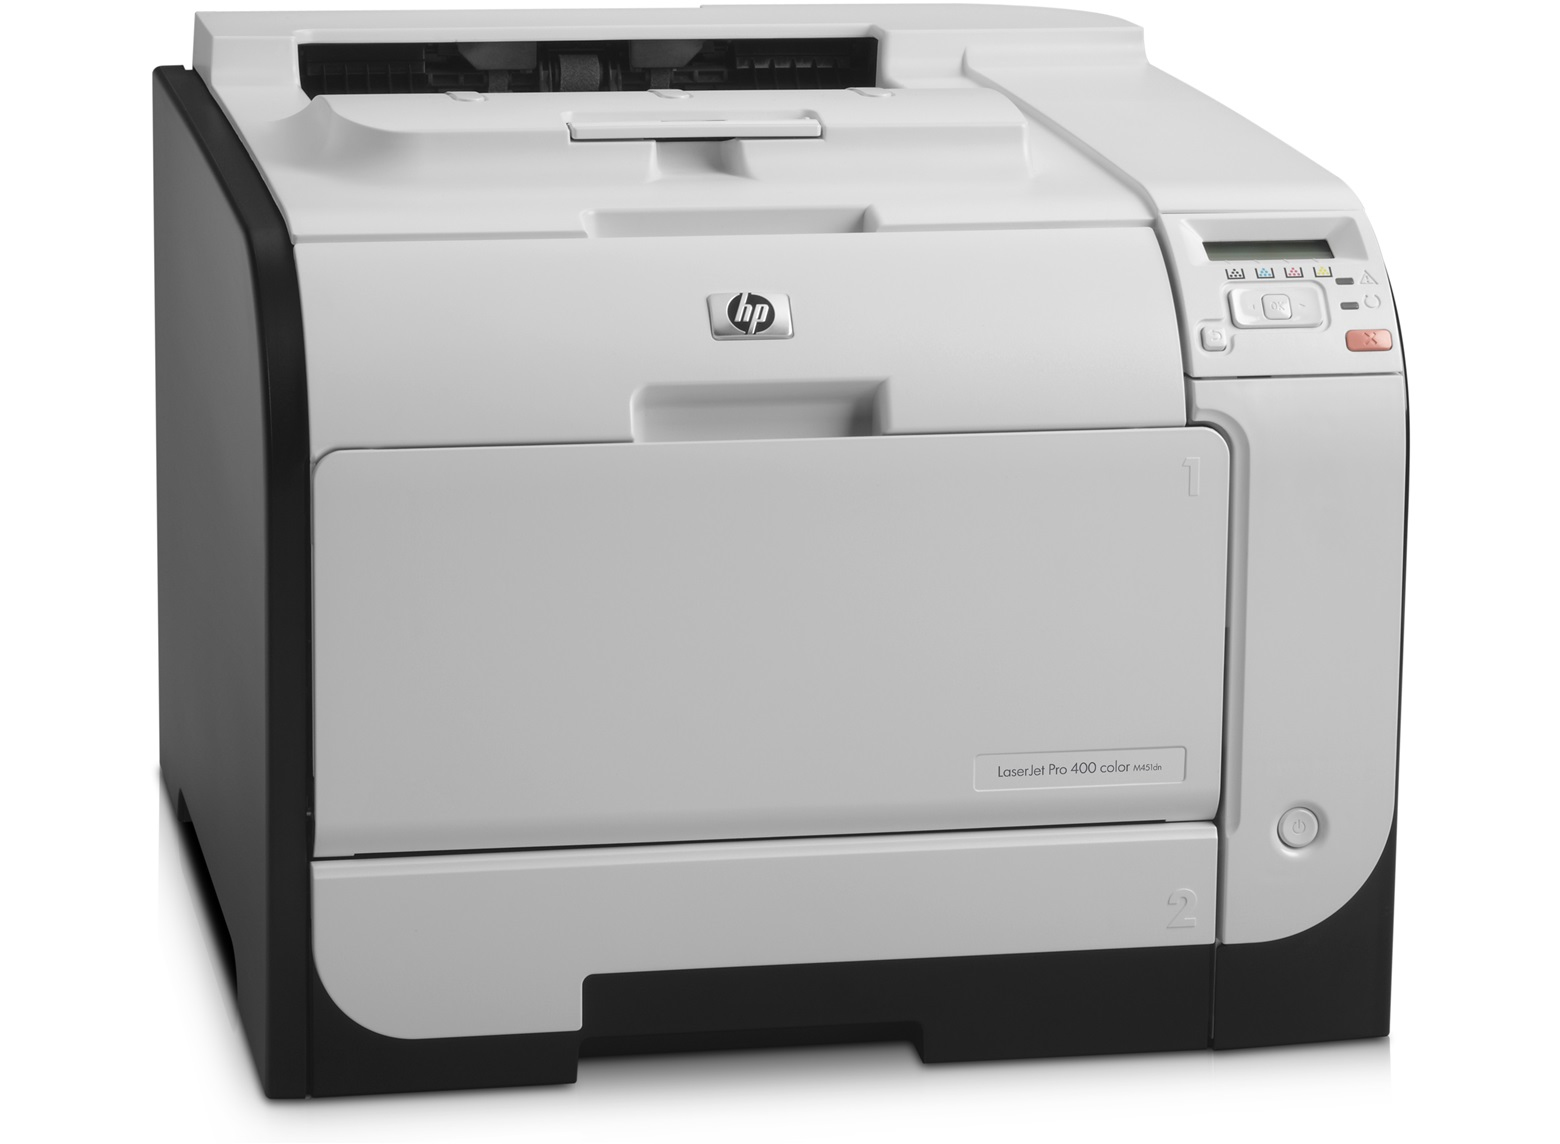 CE957A HP LaserJet M451dn Colour Laser Printer, Refurbished with 6 month RTB Warranty.